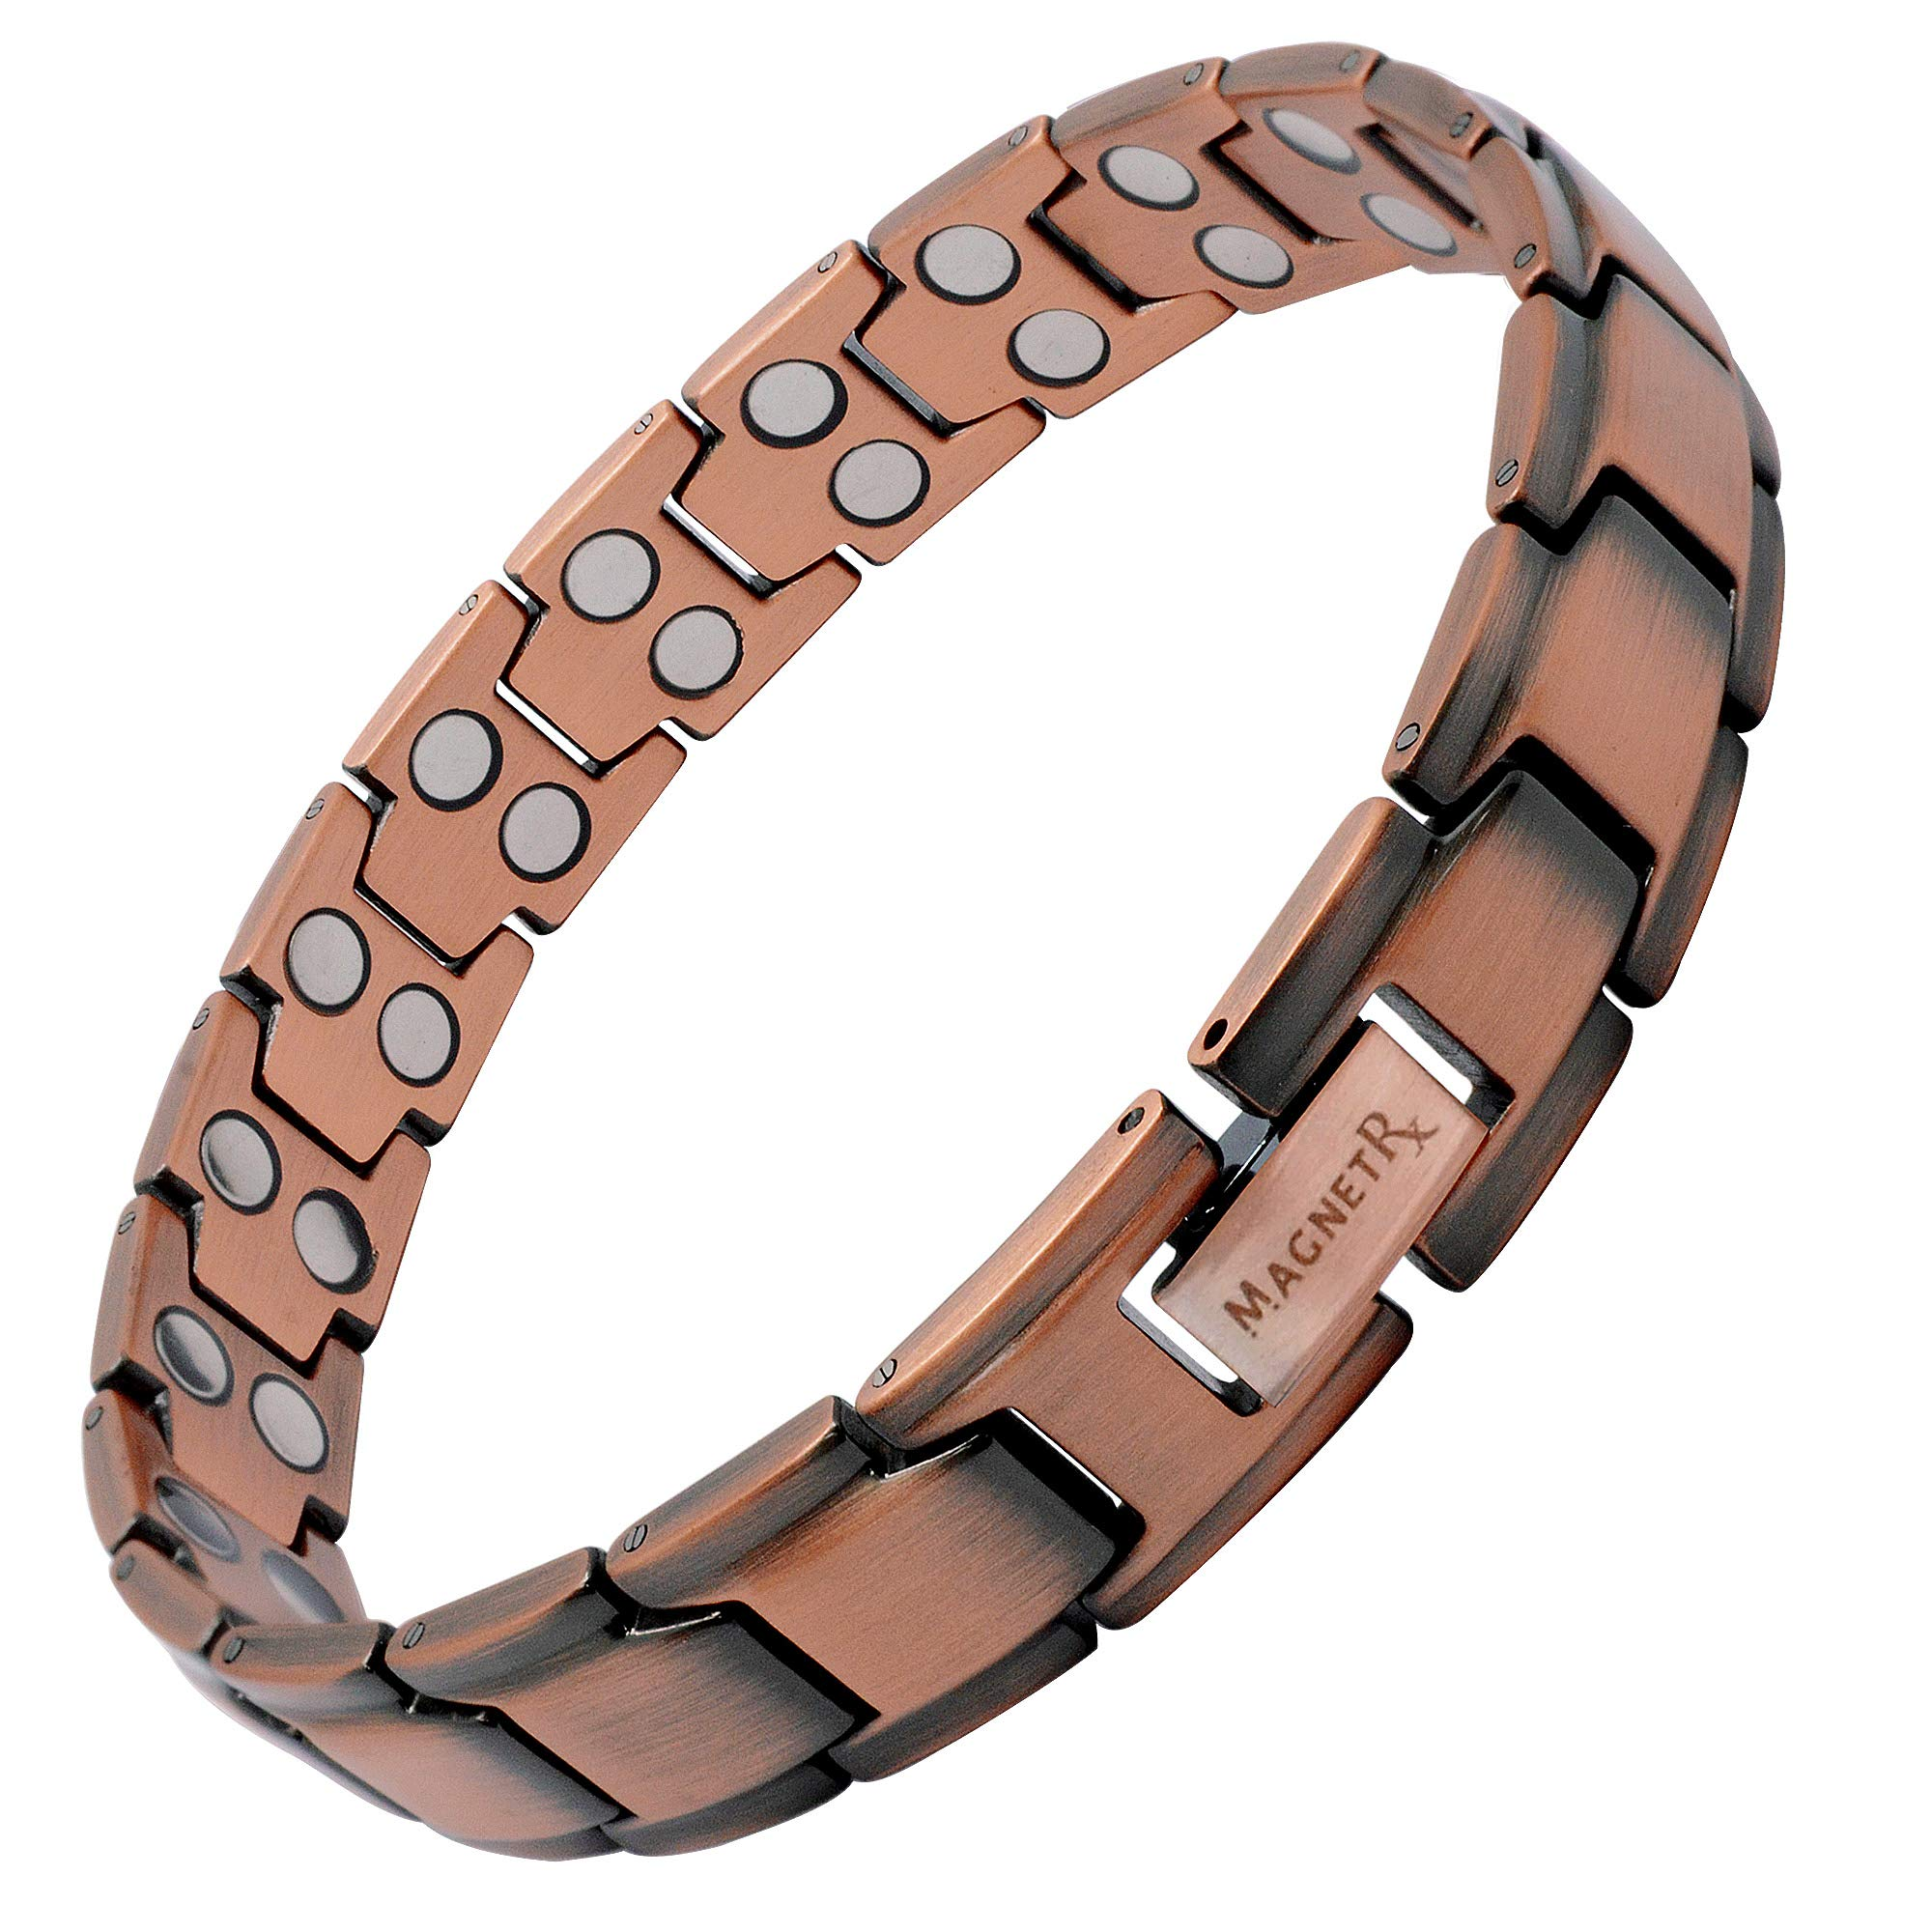 MagnetRX Pure Copper Magnetic Therapy Bracelet Ultra Strength Double Magnet Pain Relief for Arthritis and Carpal Tunnel by MagnetRX